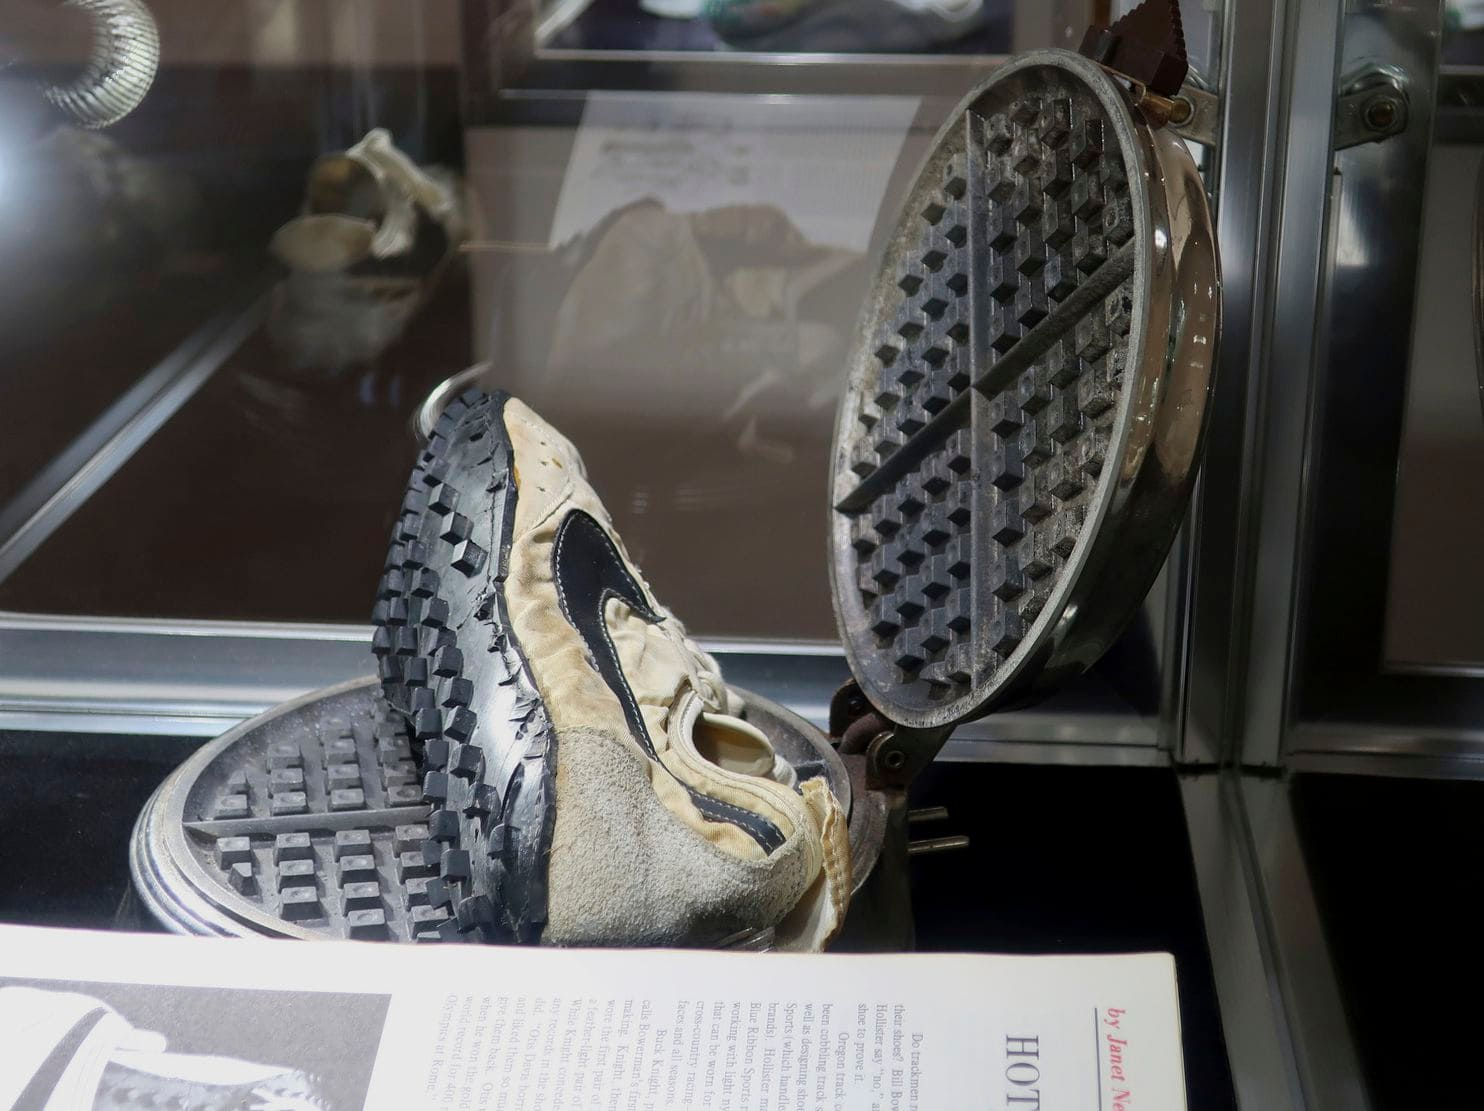 The shoe, created during Nike's infancy, is one of only a handful given away for the 1972 Olympic Trials, seen sitting inside a waffle iron here during the Sotheby's auction on Tuesday.